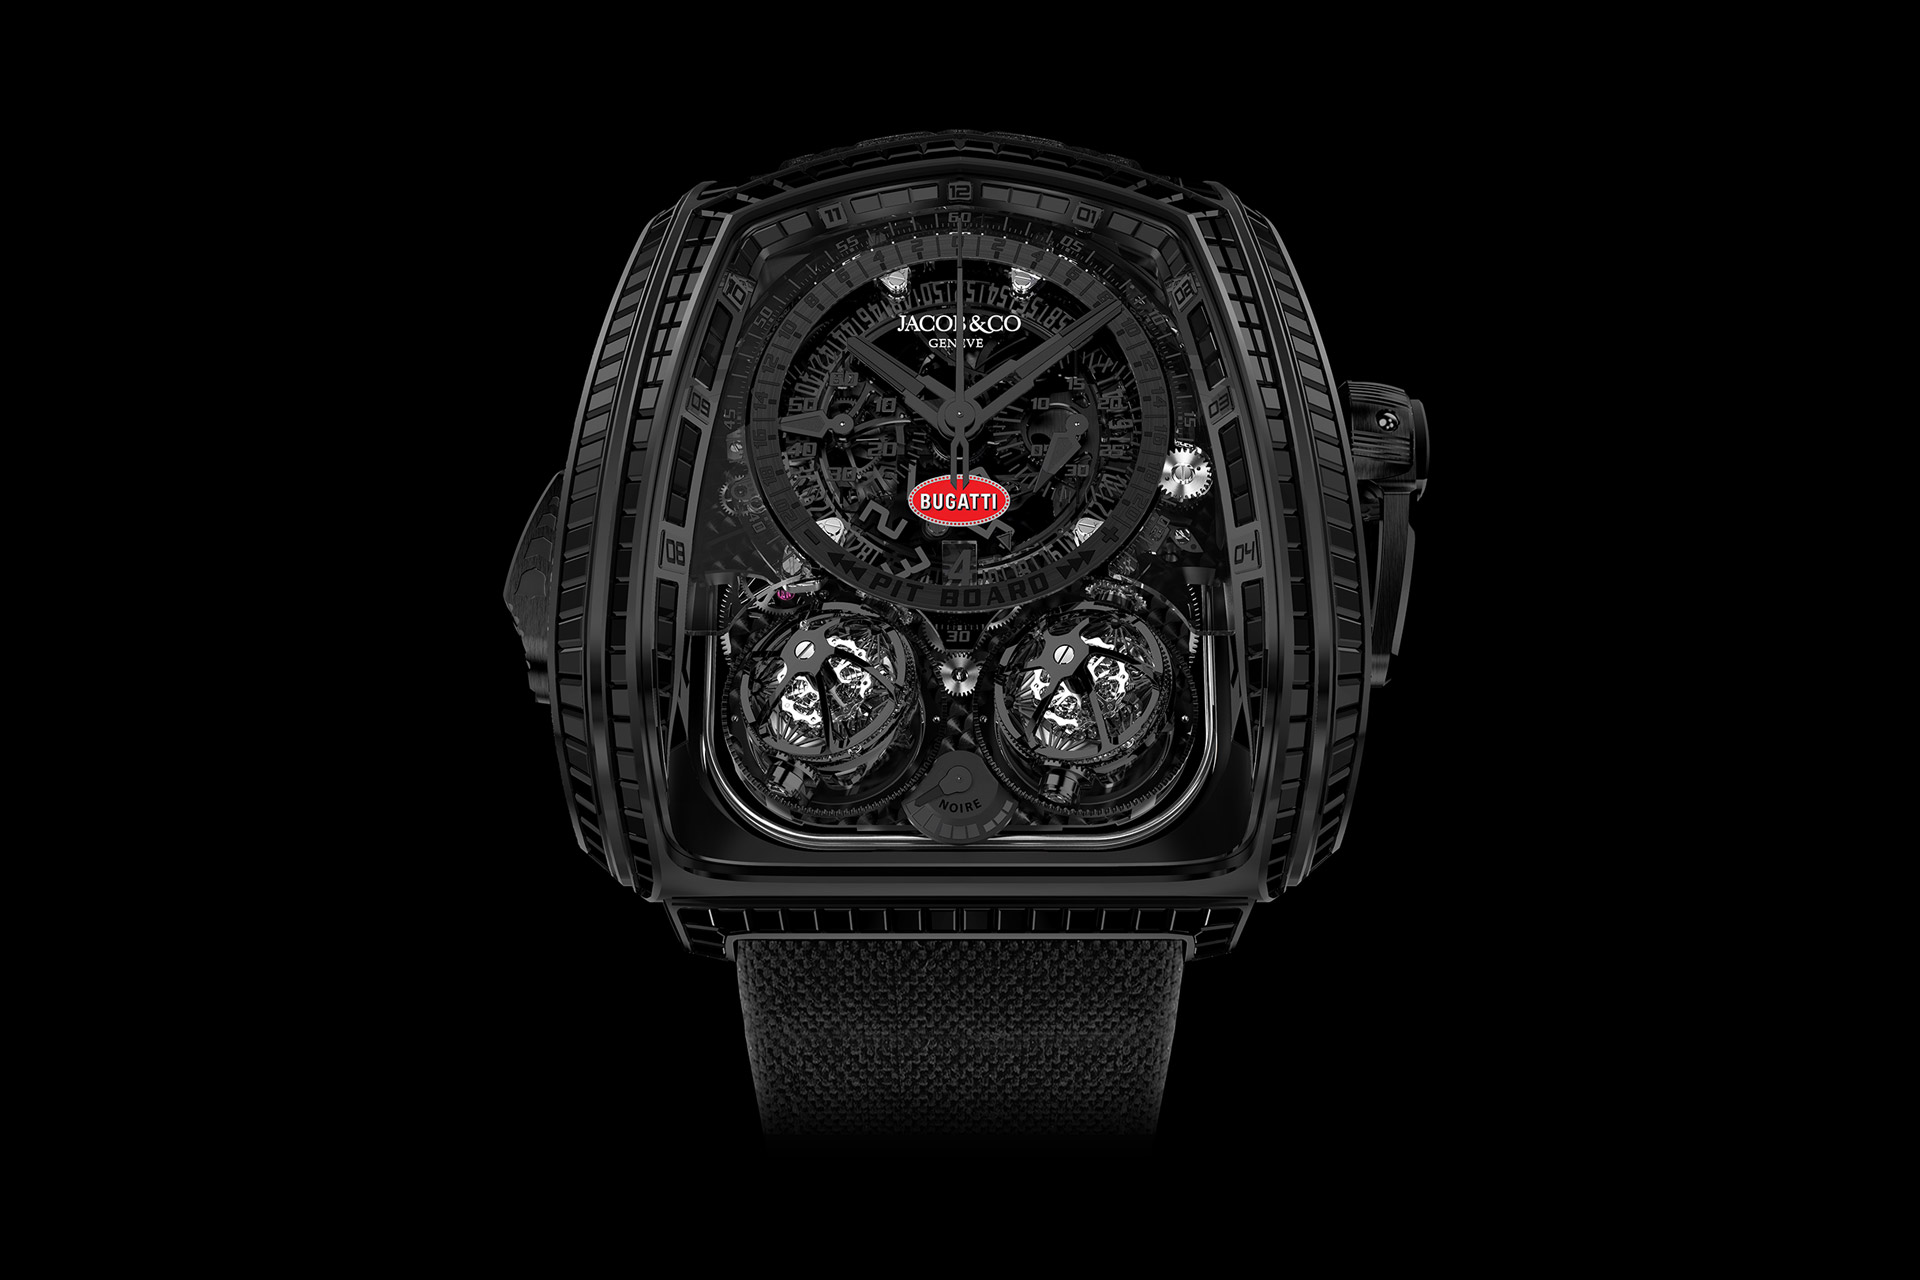 Jacob & Co. Twin Turbo Furious La Montre Noire Bugatti